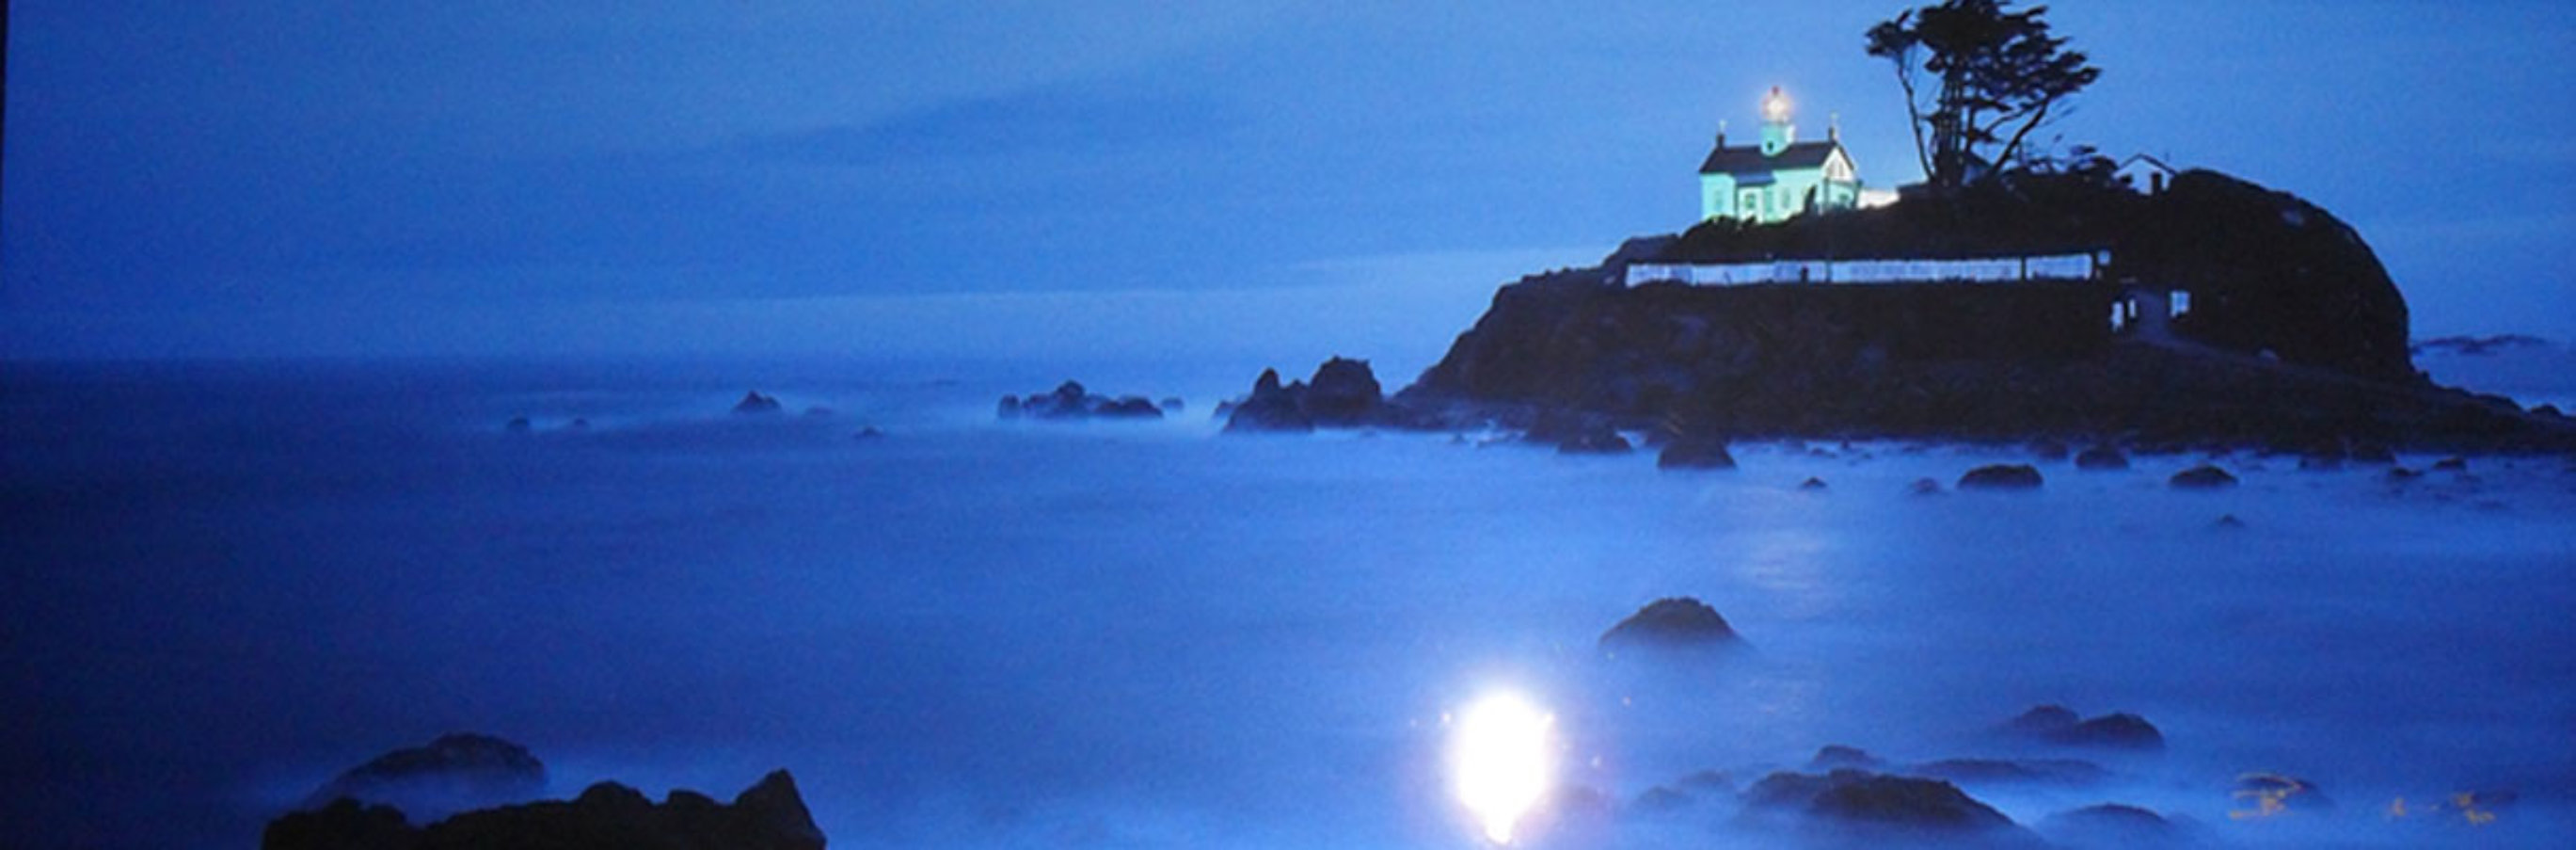 Prince of Tides (Crescent City, California) 2M Huge Panorama by Peter Lik